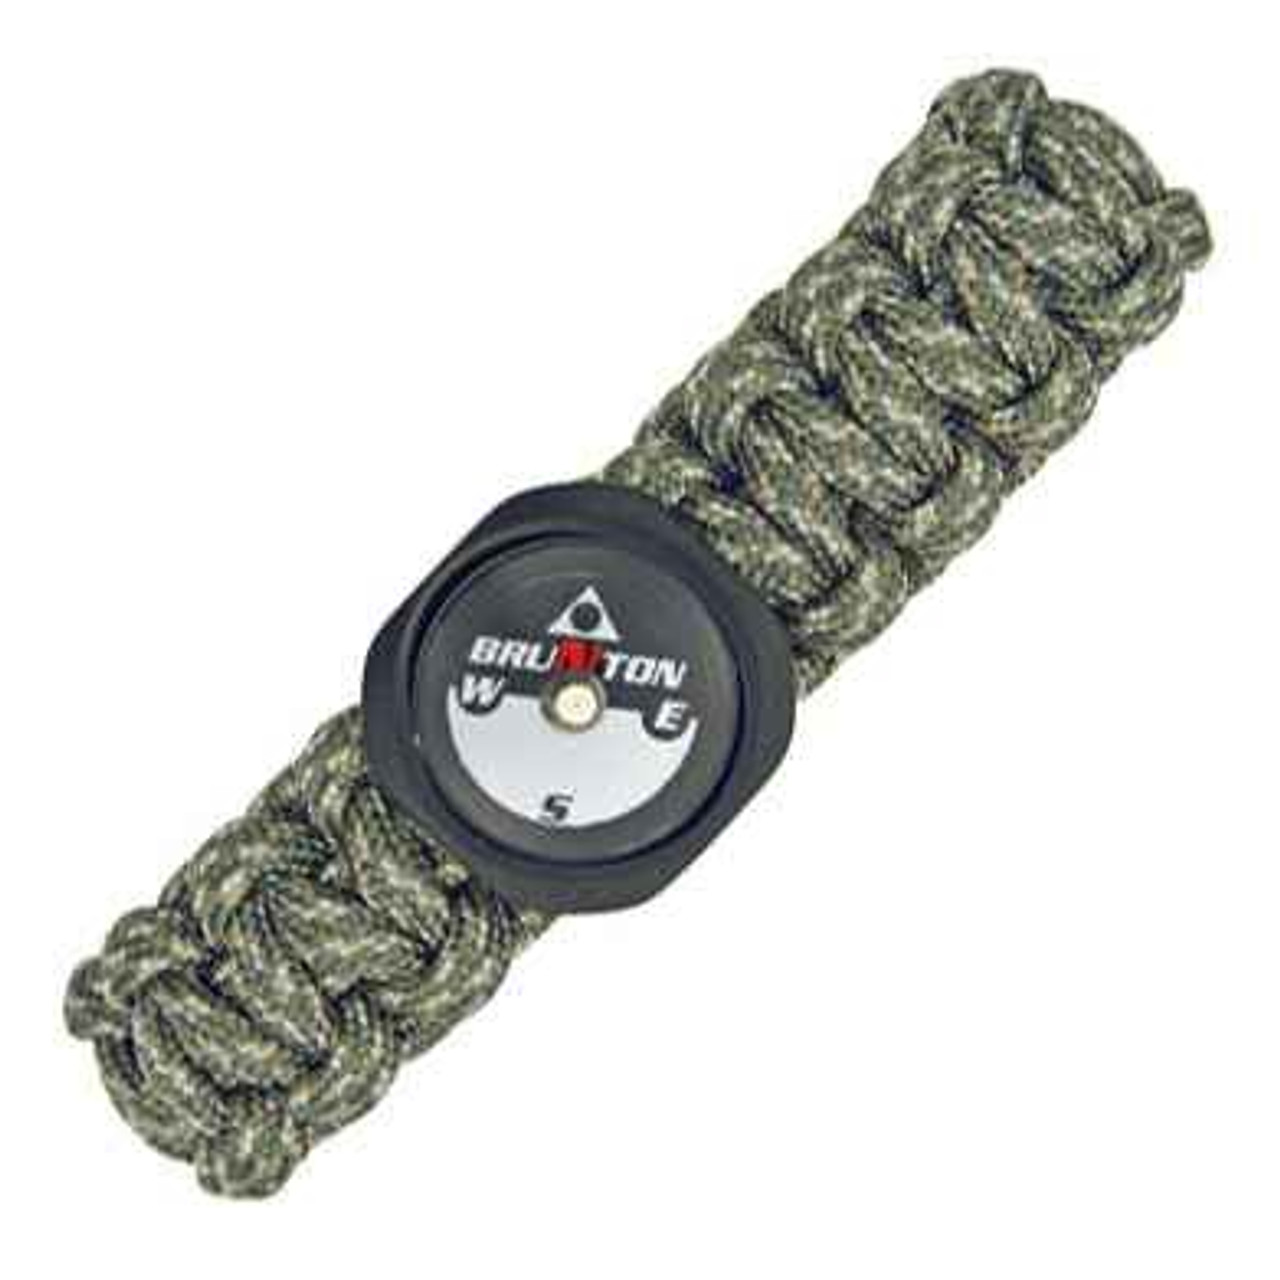 Para Cord Survival Bracelet with Compass. Digital Camo Size Small